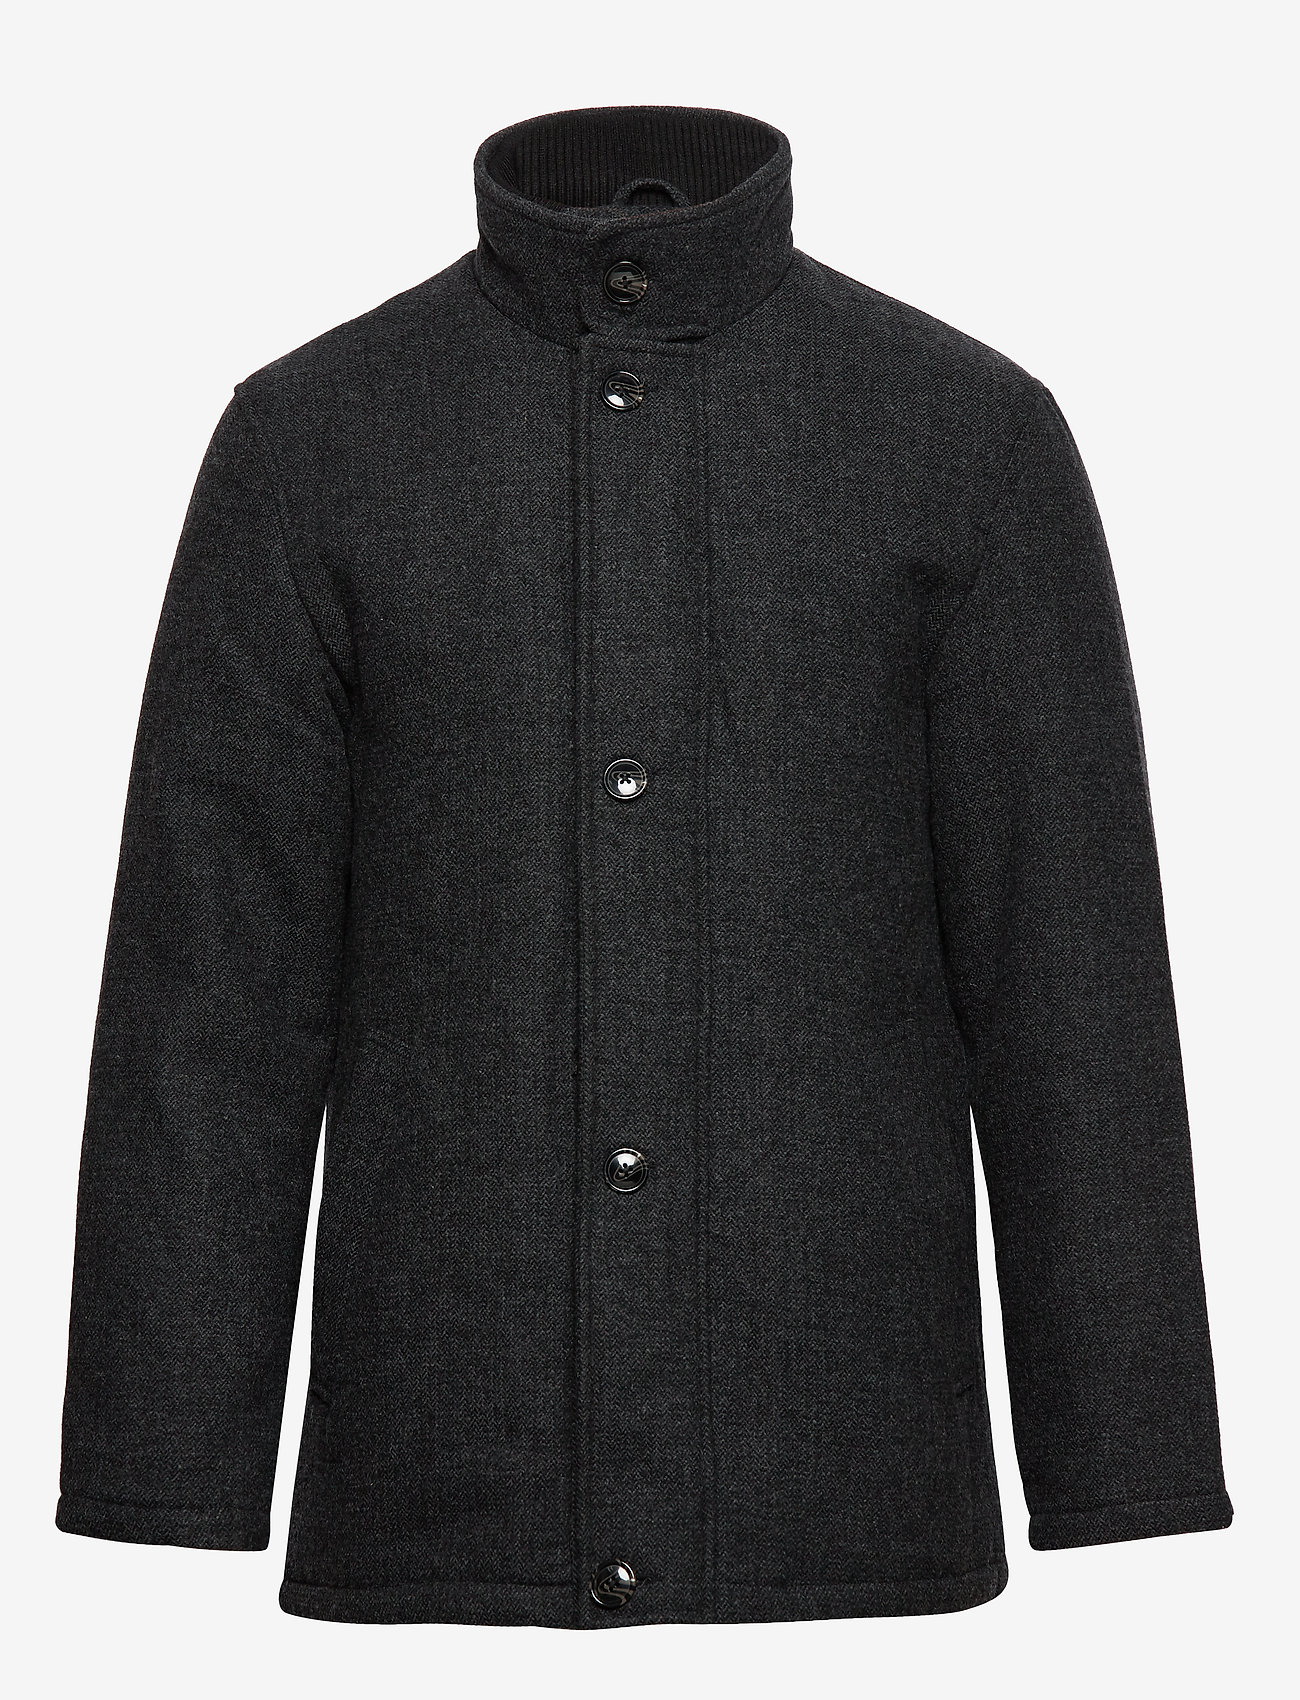 Seven Seas Copenhagen - HARRISON JACKET - wool jackets - dark grey - 1